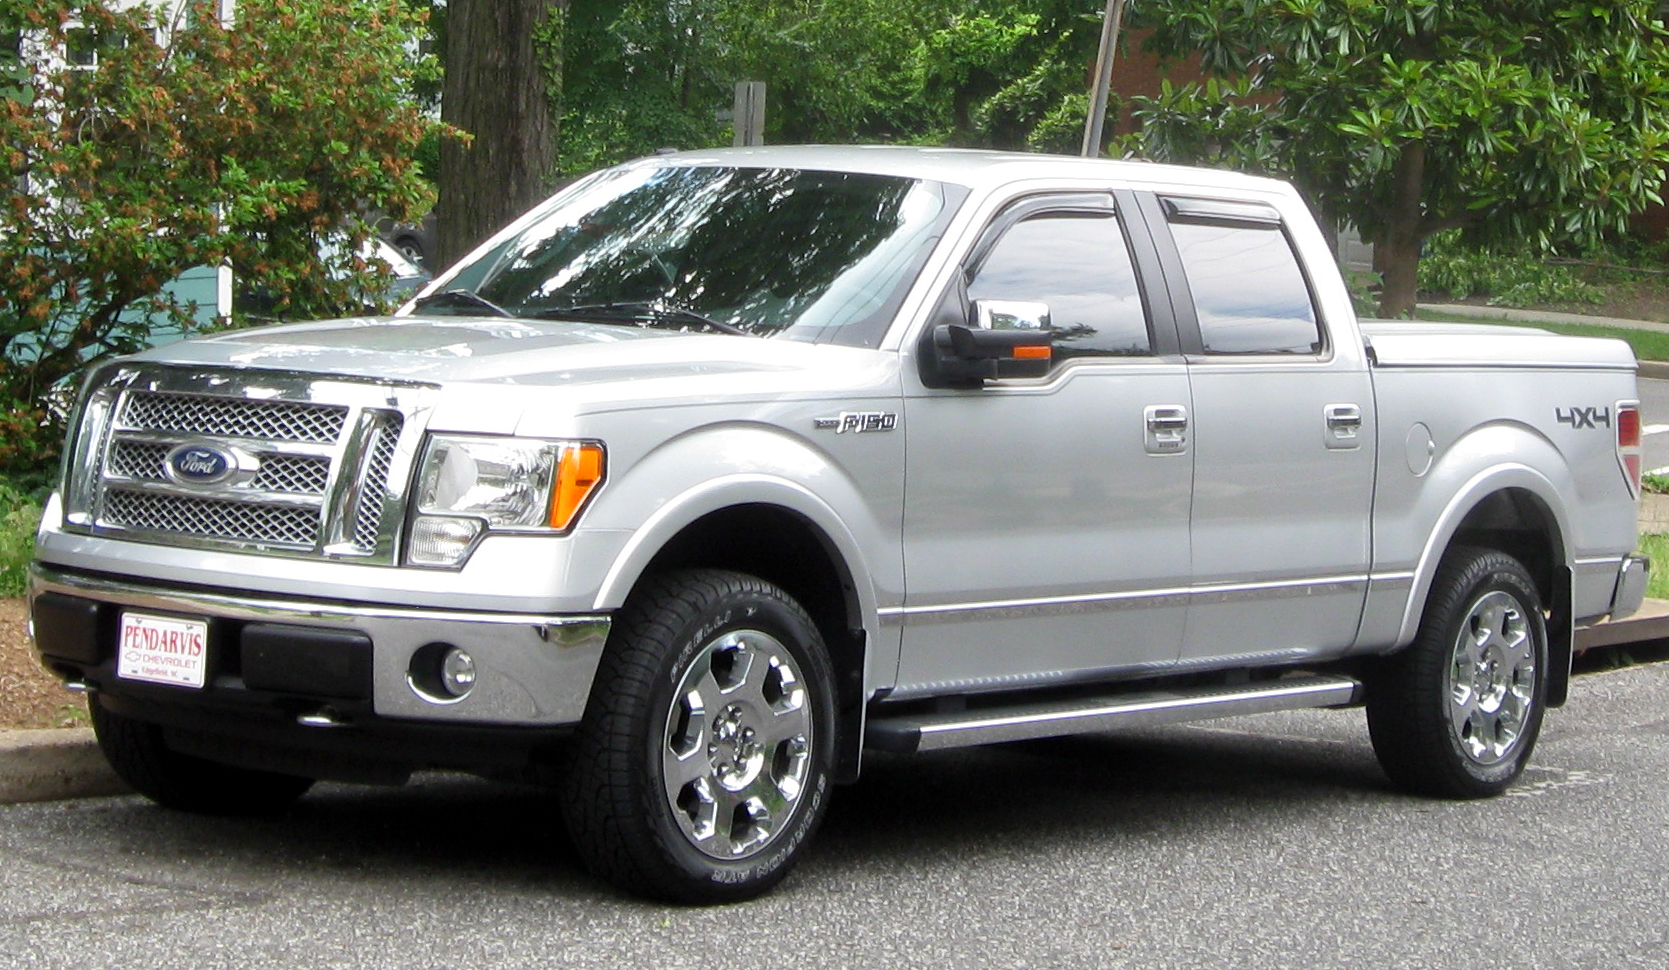 File:Ford F-150 crew cab -- 05-28-2011.jpg - Wikimedia Commons